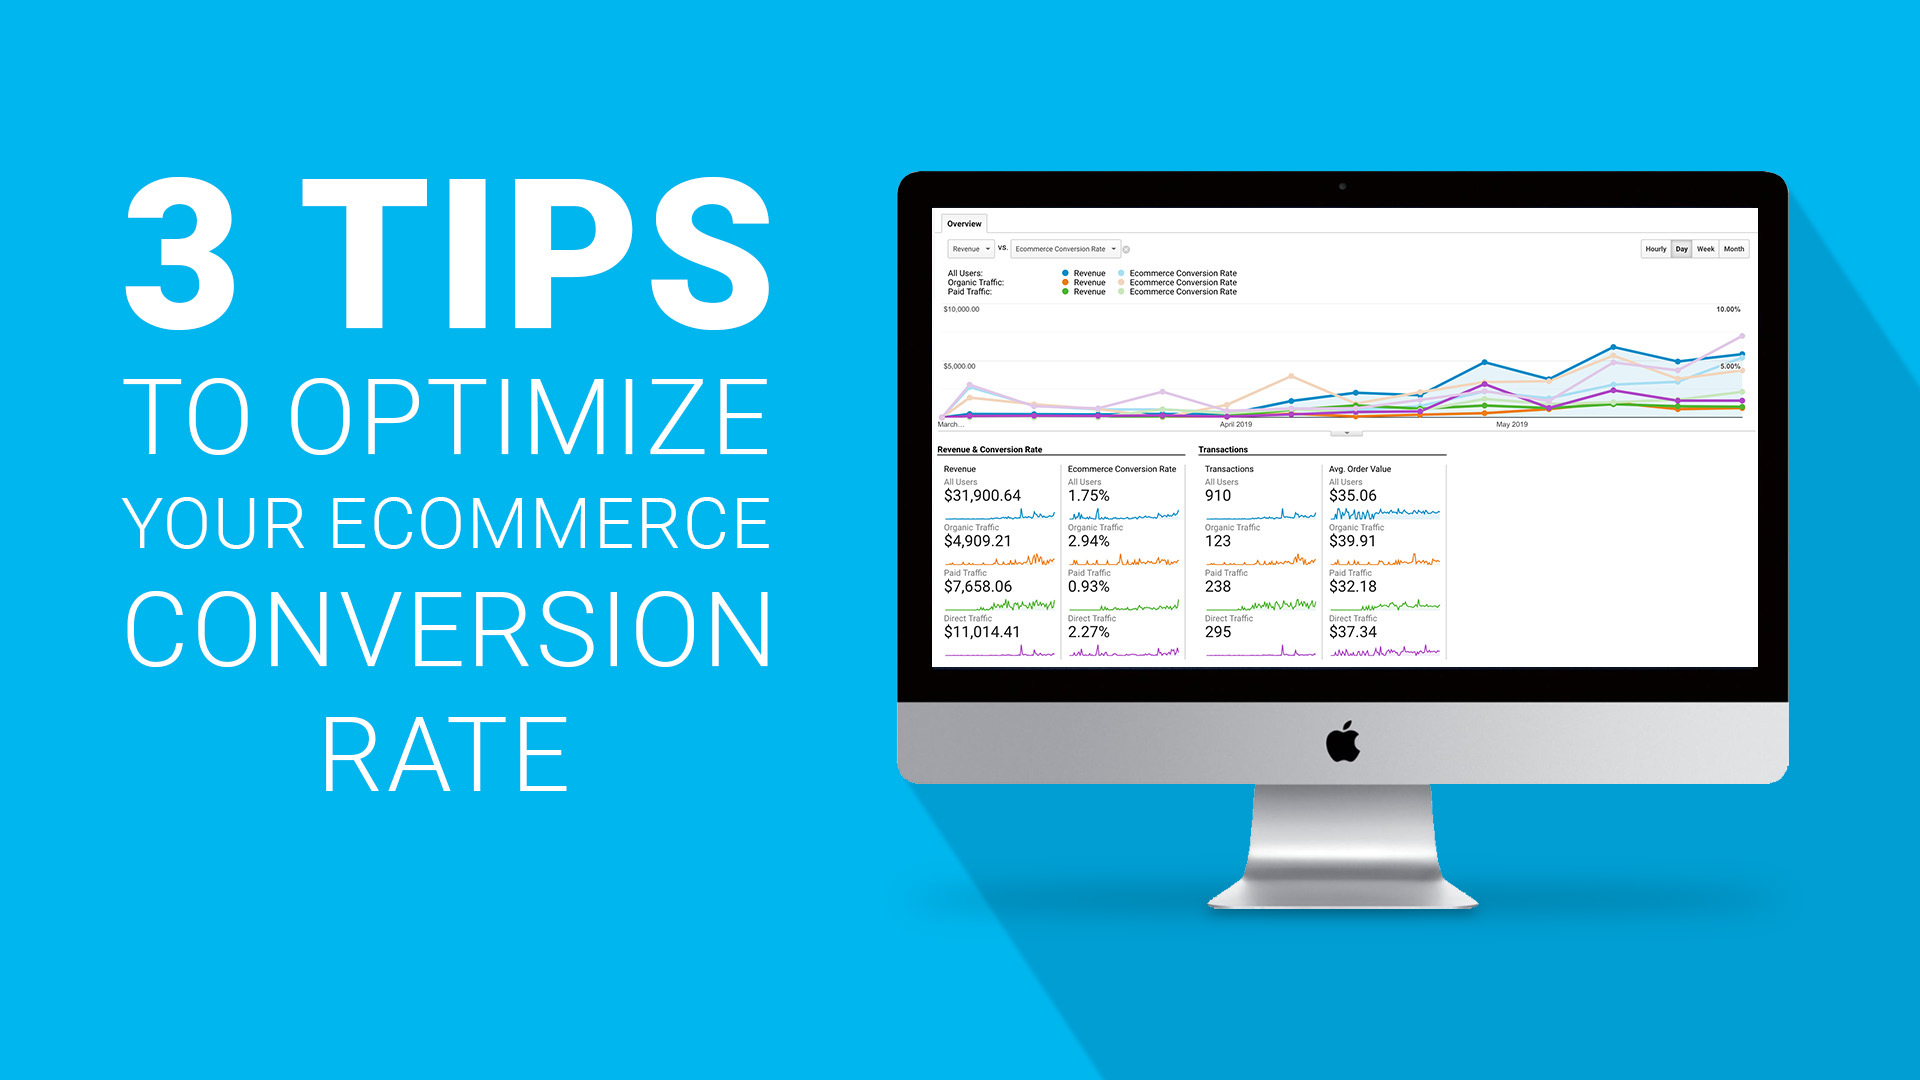 3 Tips to Optimize Your Ecommerce Conversion Rate